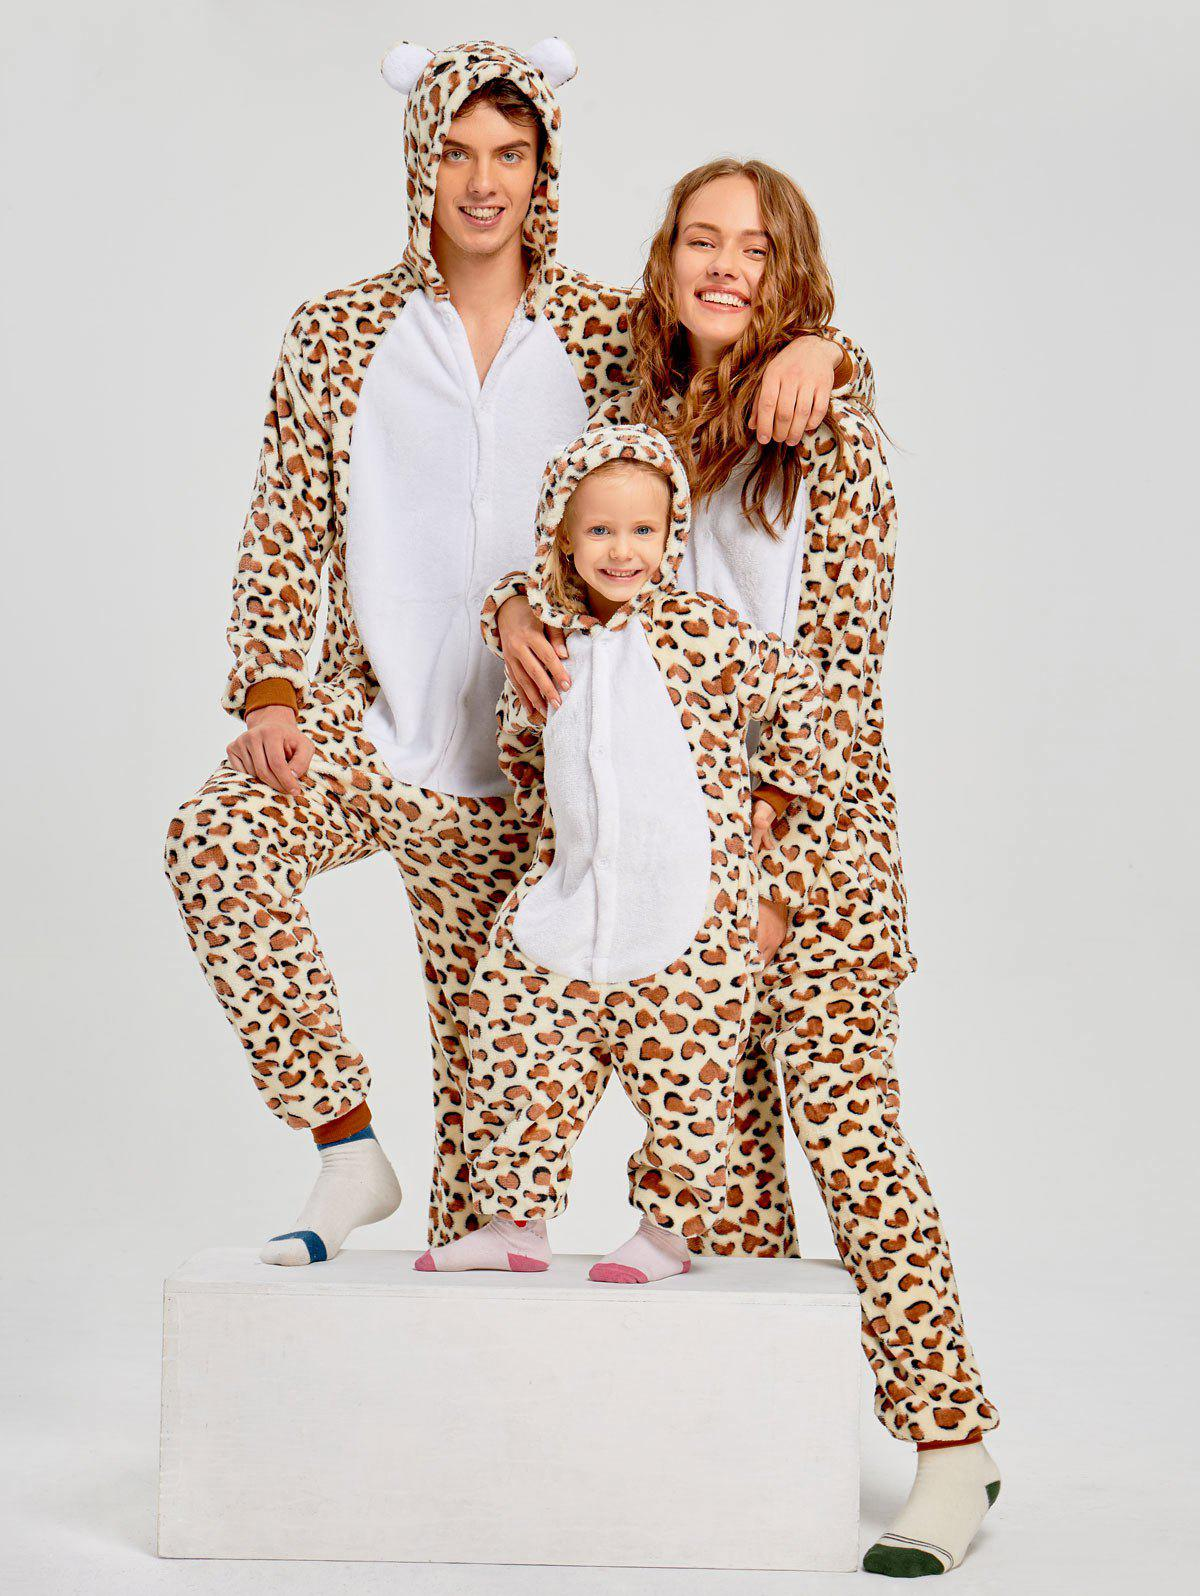 Family Leopard Printed Bear Animal  Onesie Pajamas  - LEOPARD PRINT PATTERN KID 120